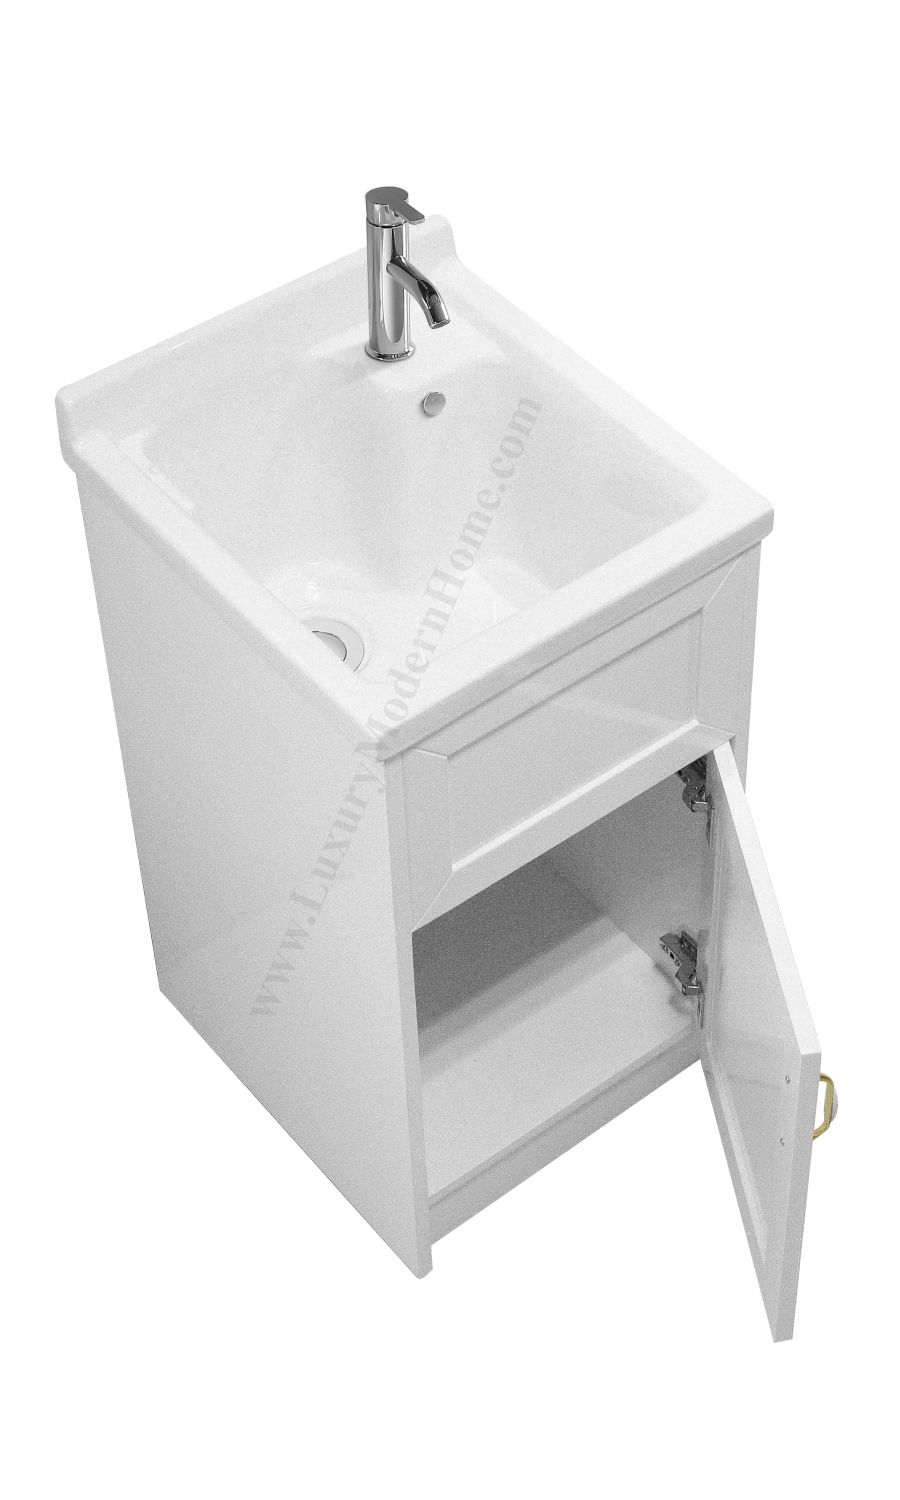 laundry sink laundry room utility sink